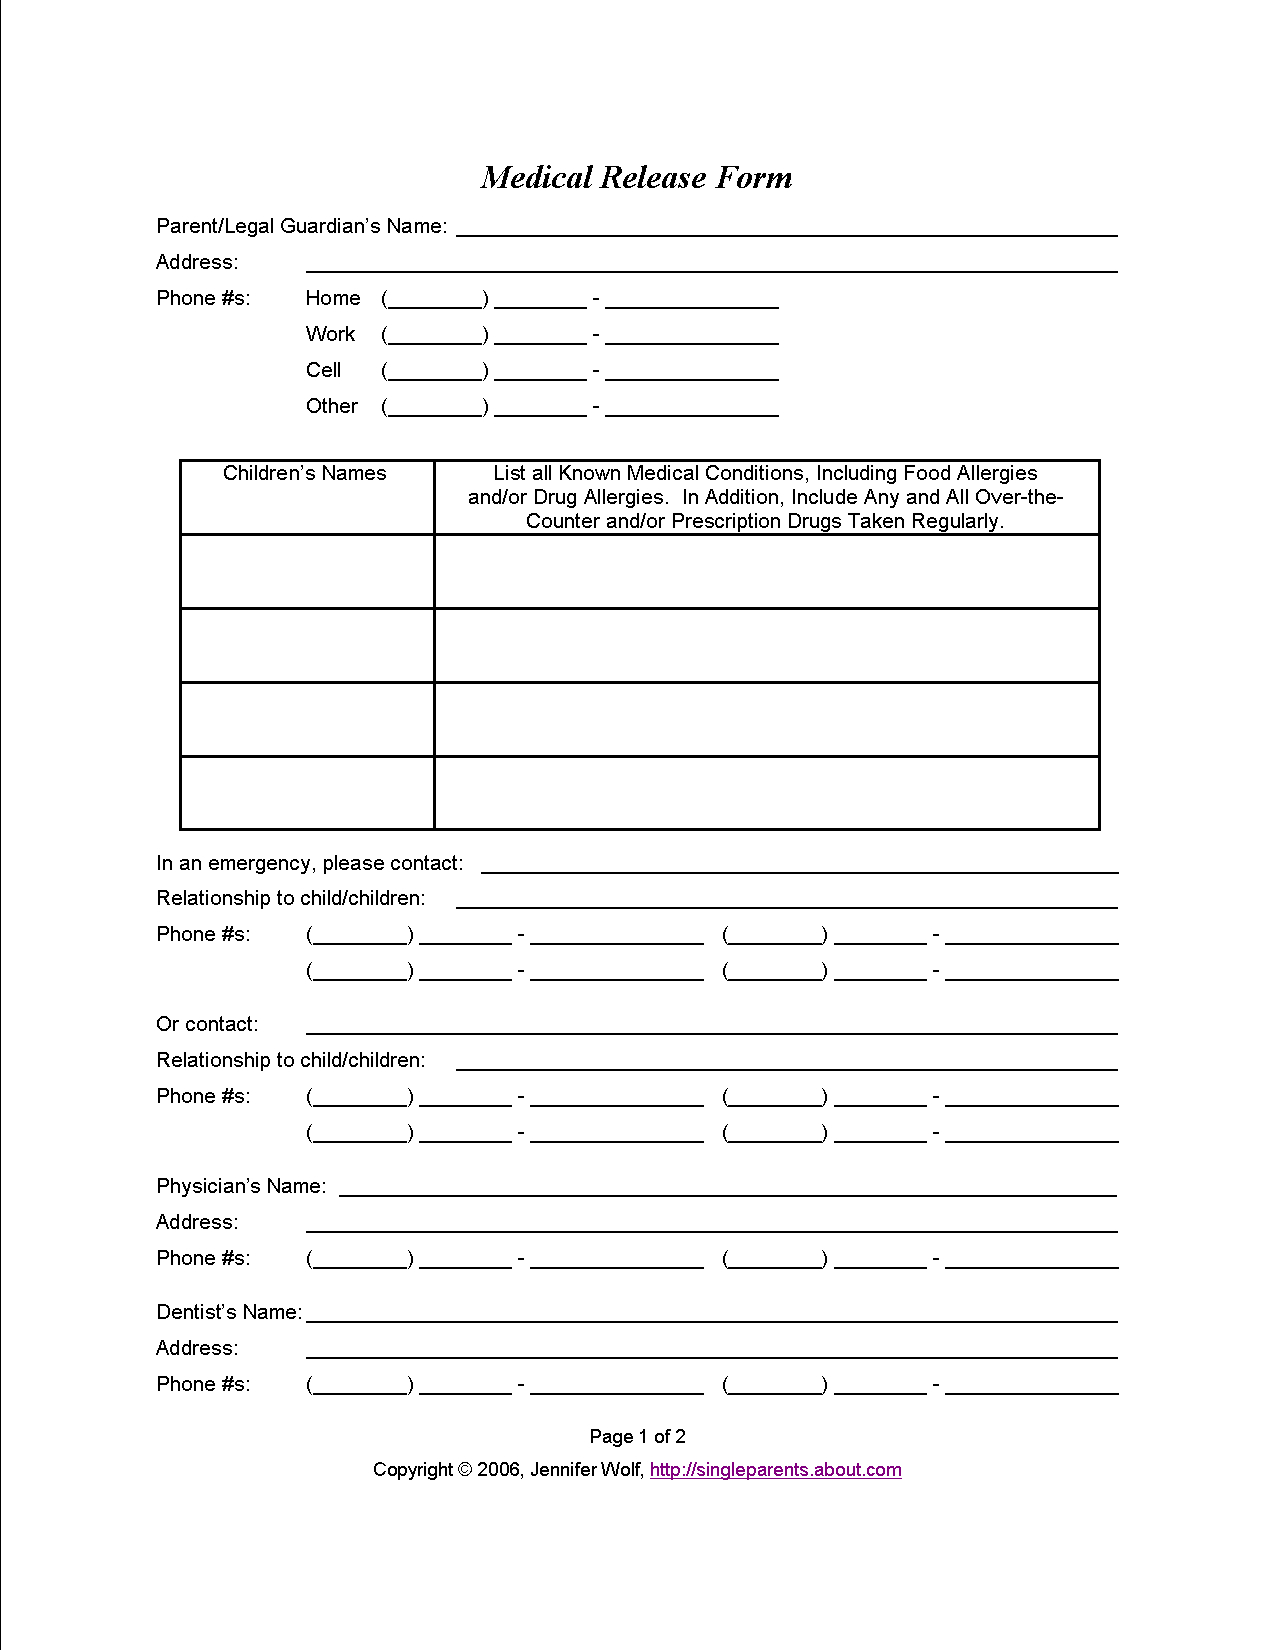 Do You Have A Medical Release Form For Your Kids? | Travel - Free Printable Medical Forms Kit